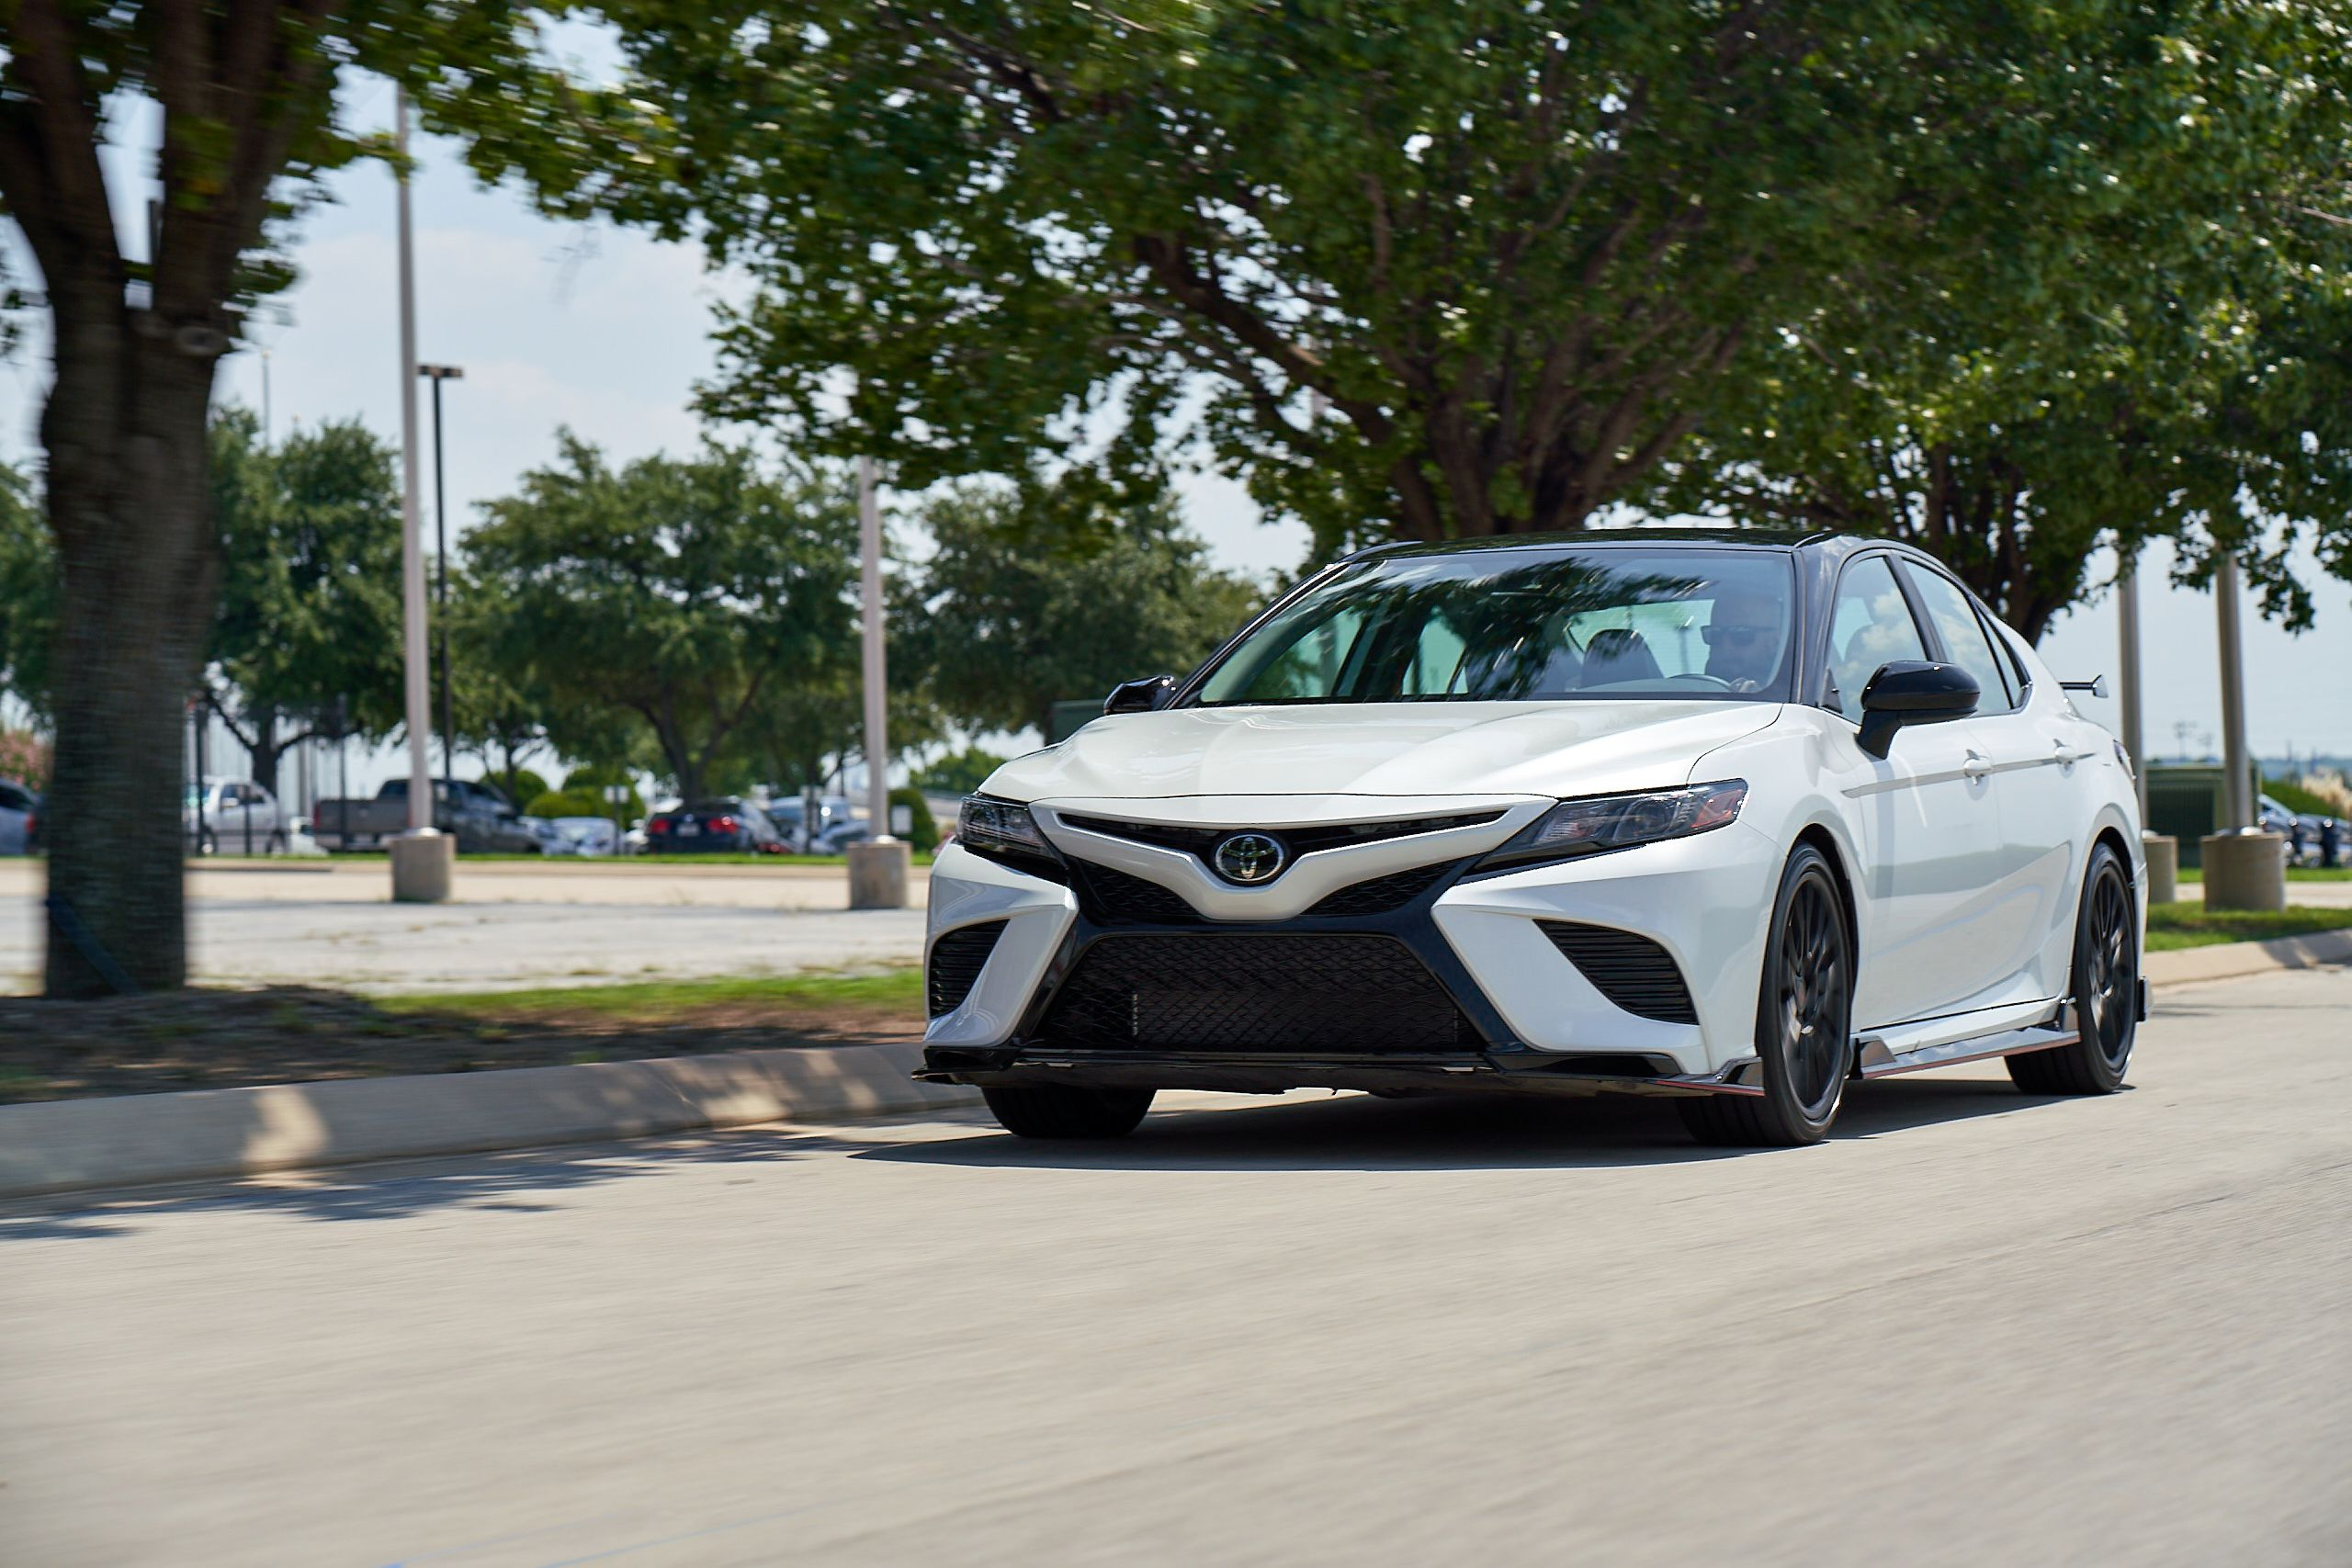 2020 Camry Xse Review.2020 Toyota Camry Trd Changes The Camry S Game